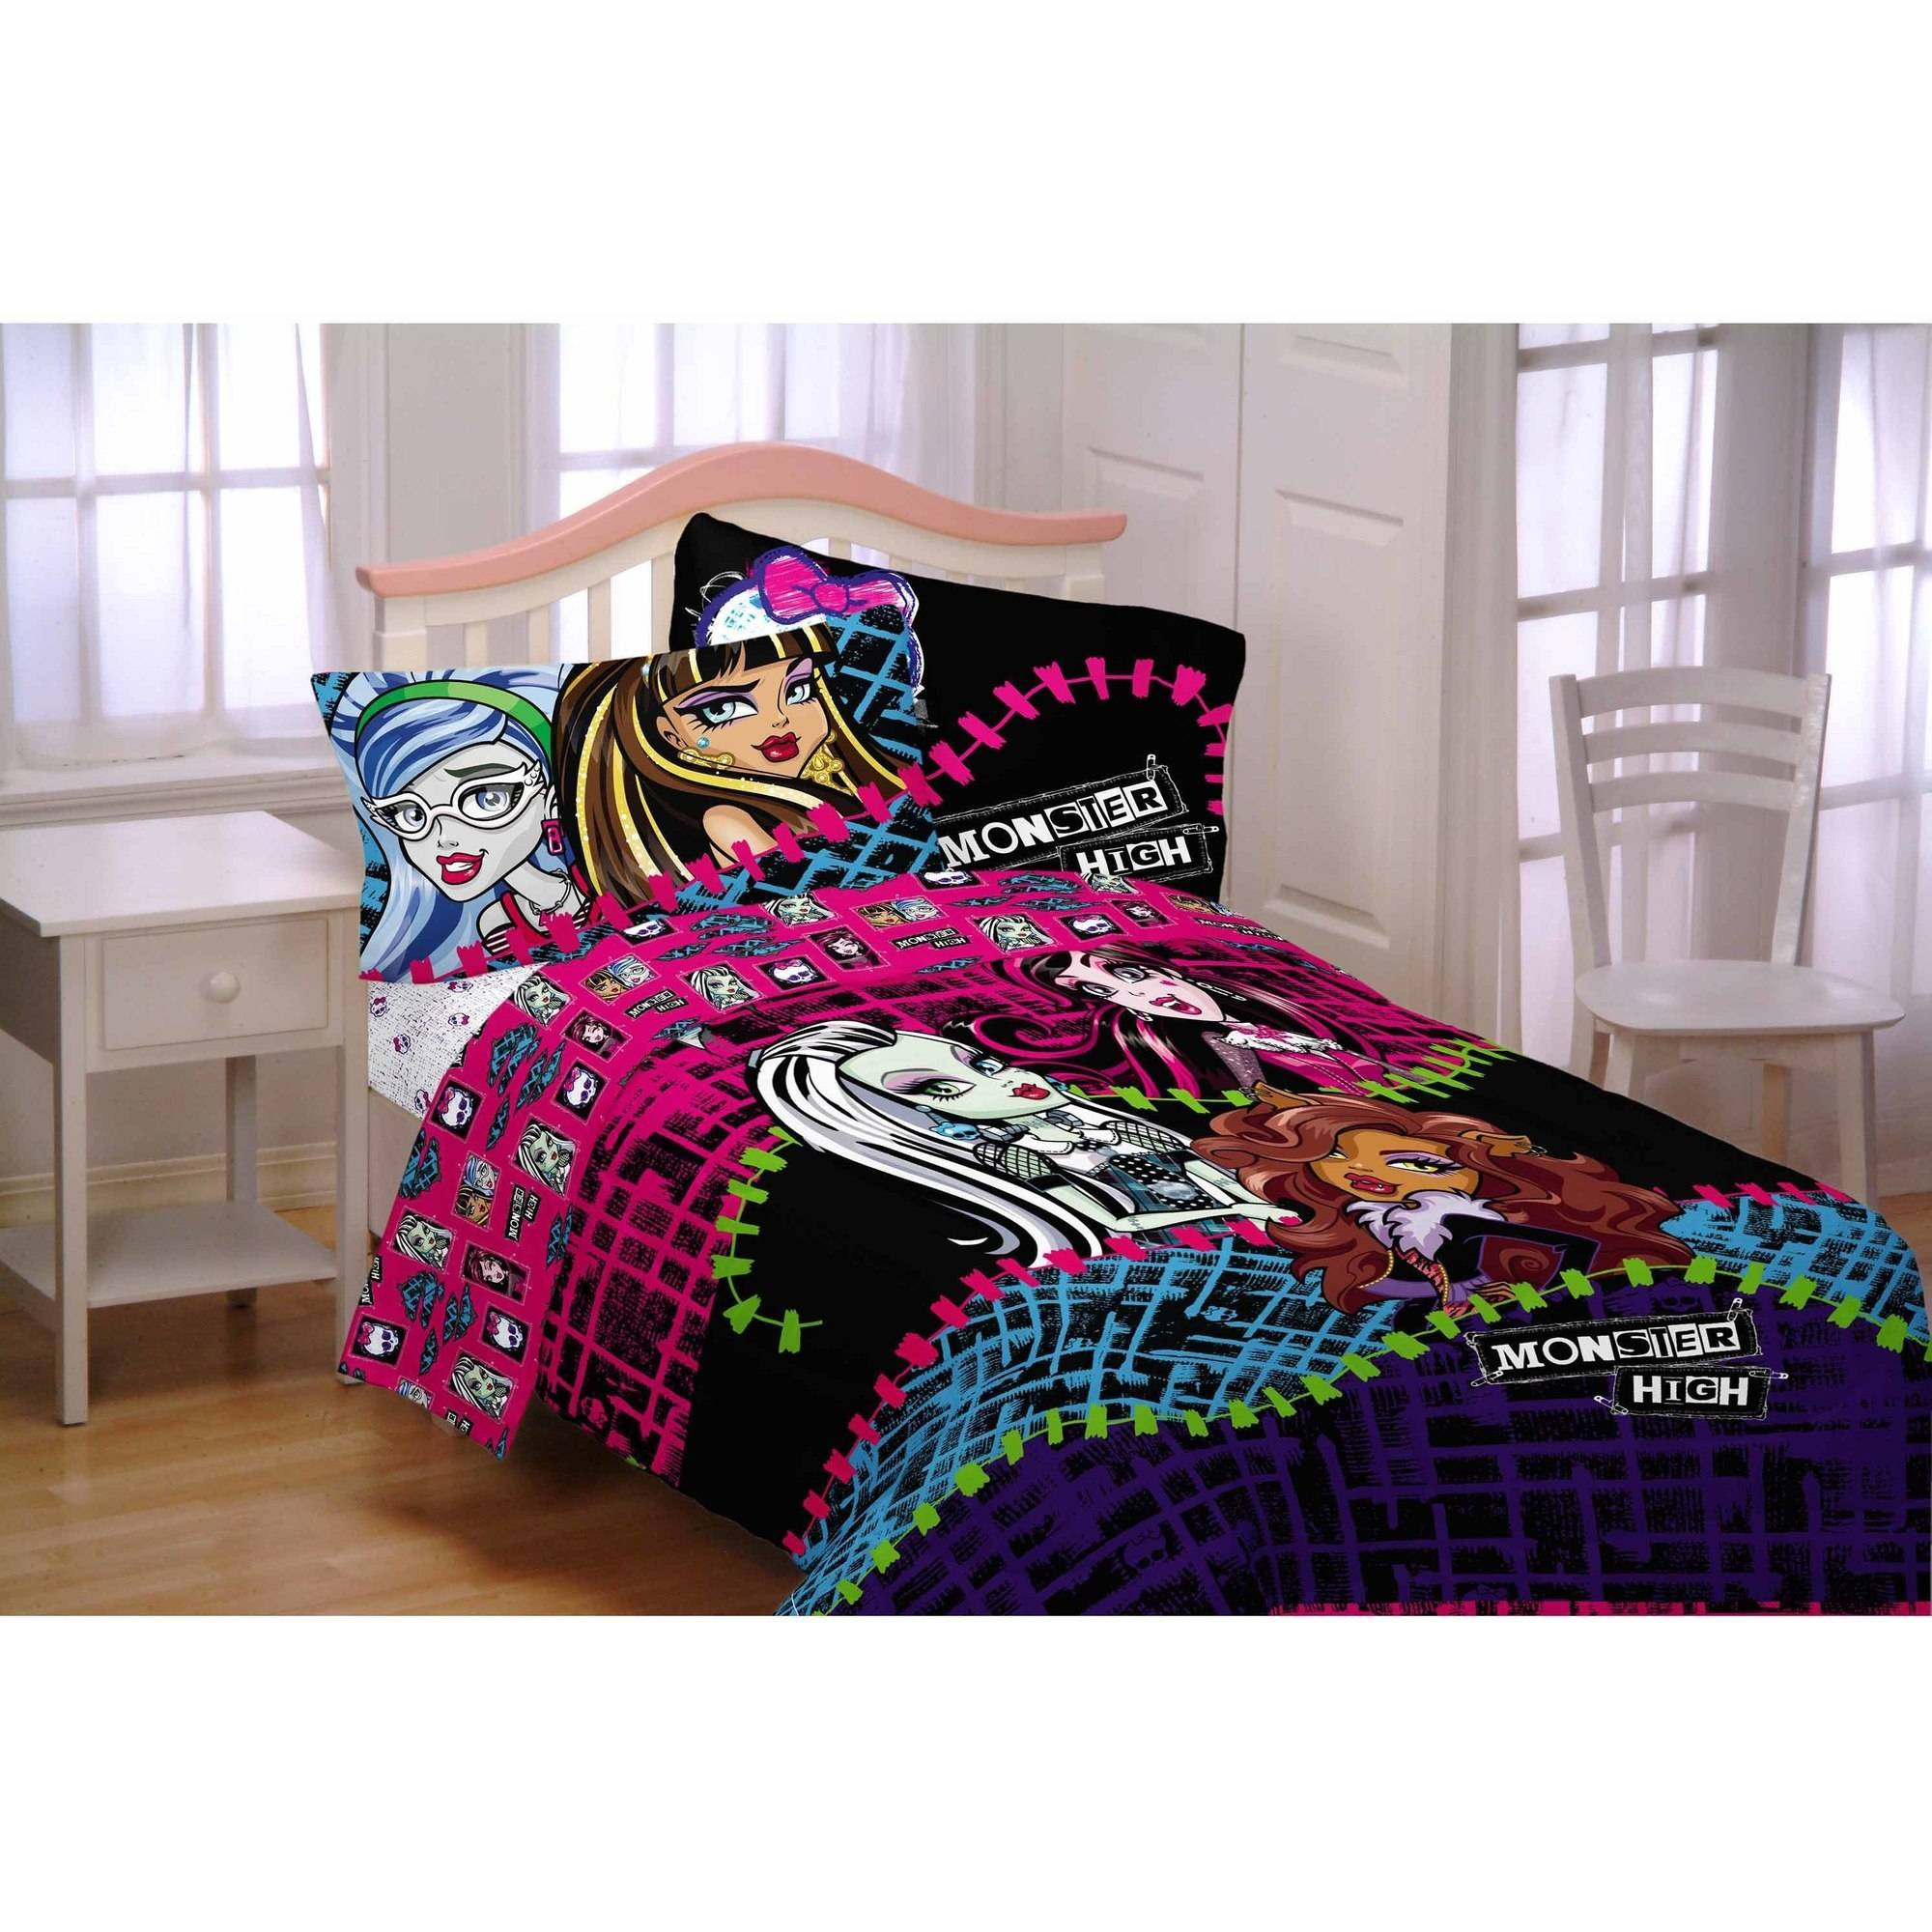 Charmant Monster High All Ghouls Allowed Bed In Bag Bedding Set   Walmart.com